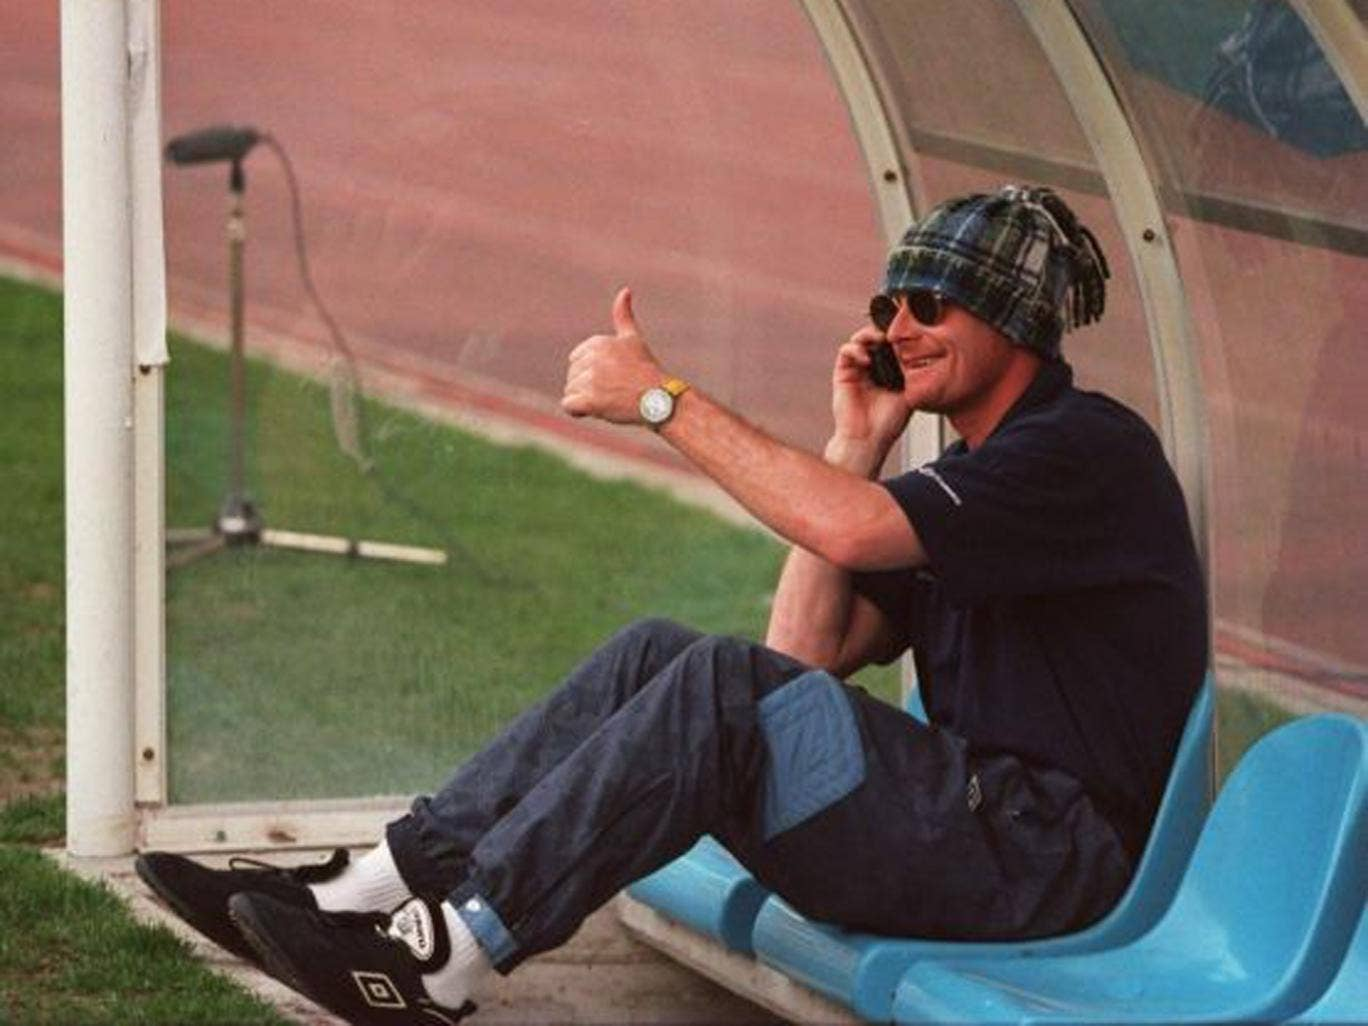 Gazza tries to stay undercover while with Lazio in 1995